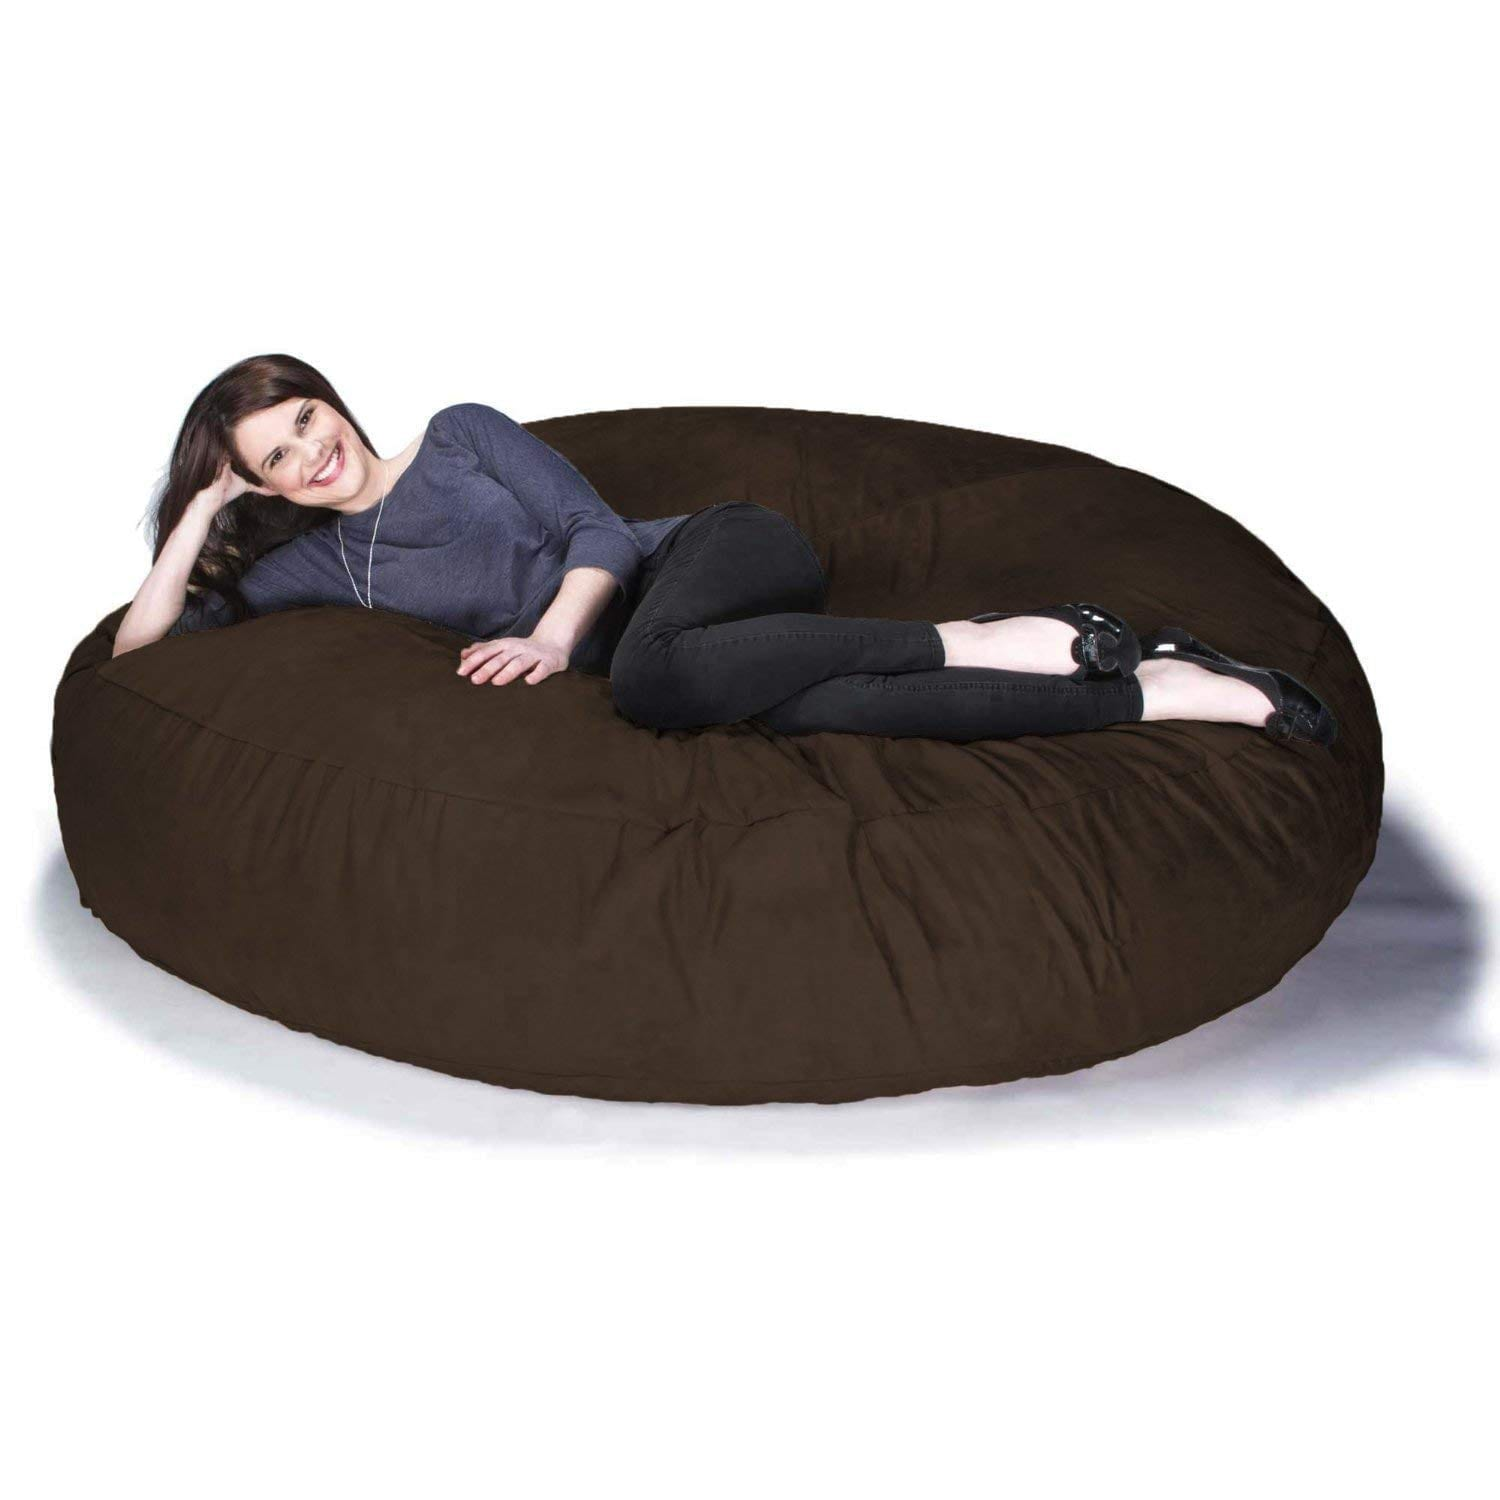 Jaxx 6foot Cocoon, Chocolate